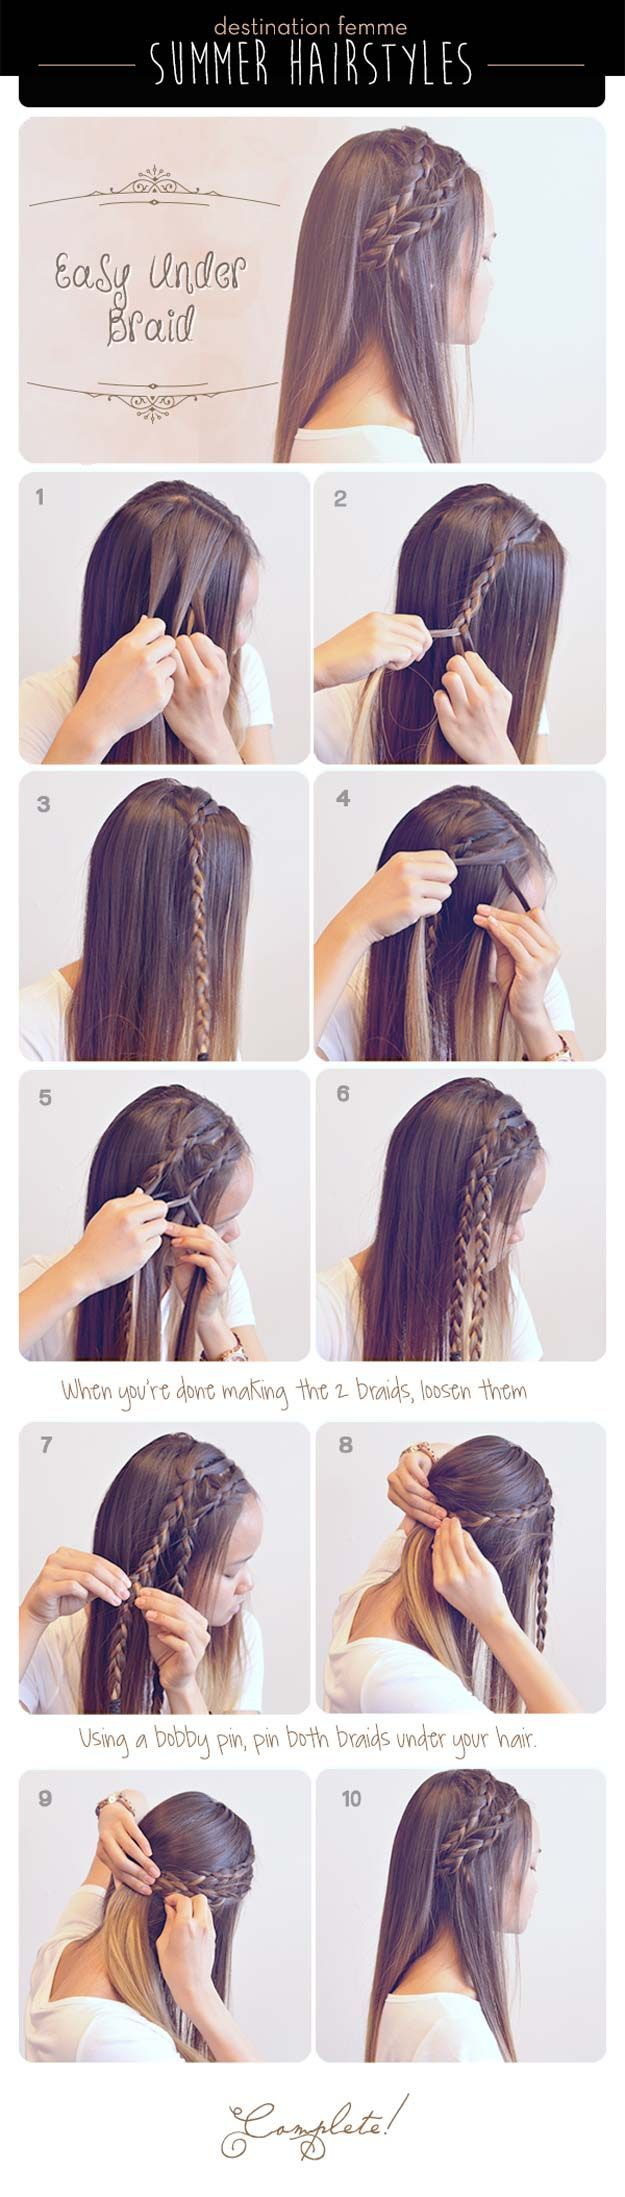 best girl hairstyles images on pinterest hairstyle tutorials